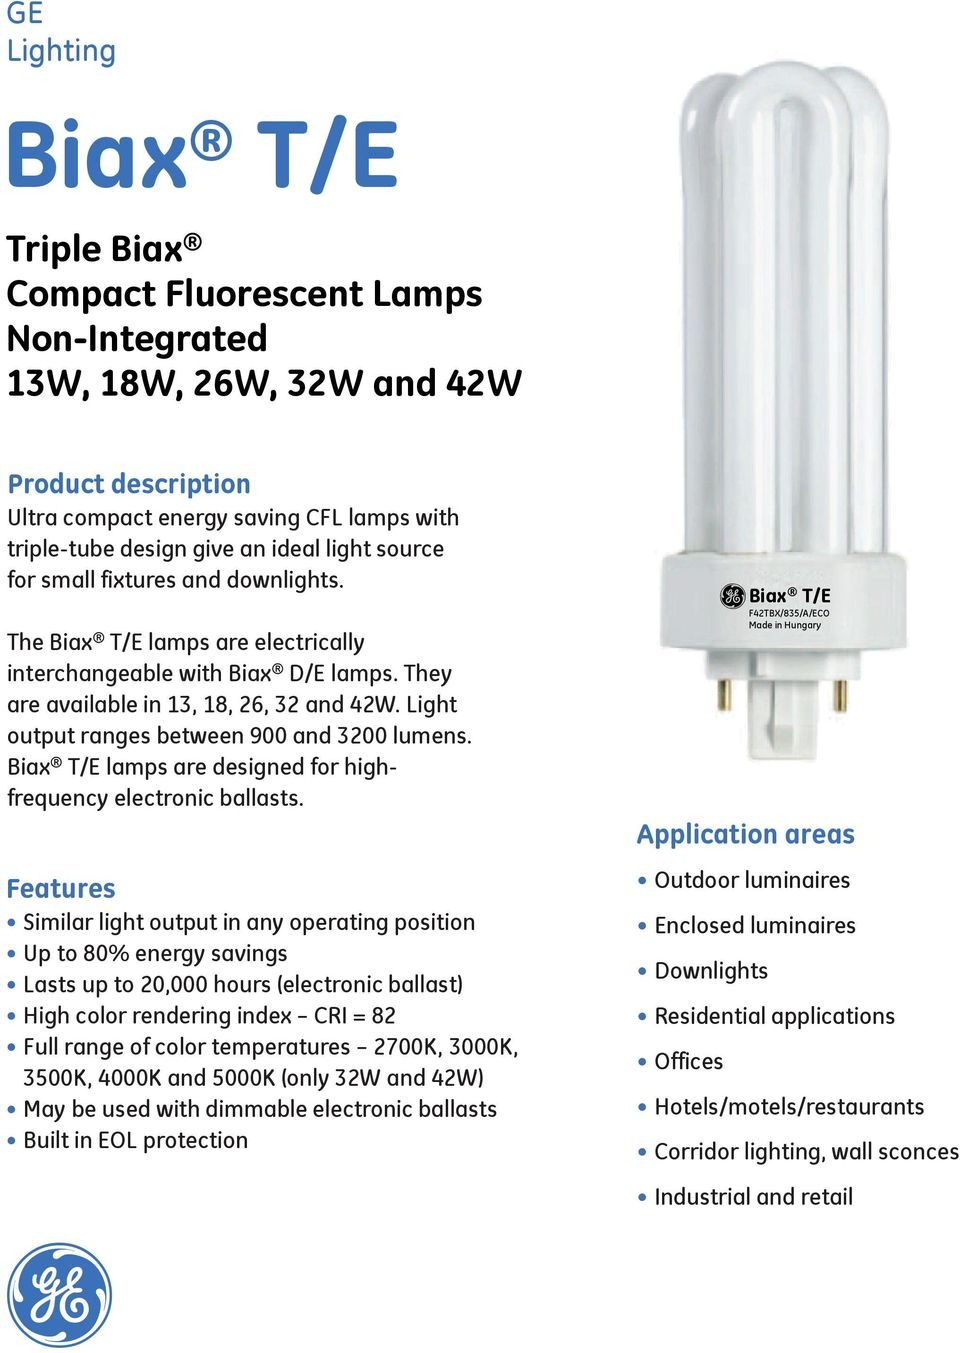 Biax T/E lamps are designed for highfrequency electronic ballasts.